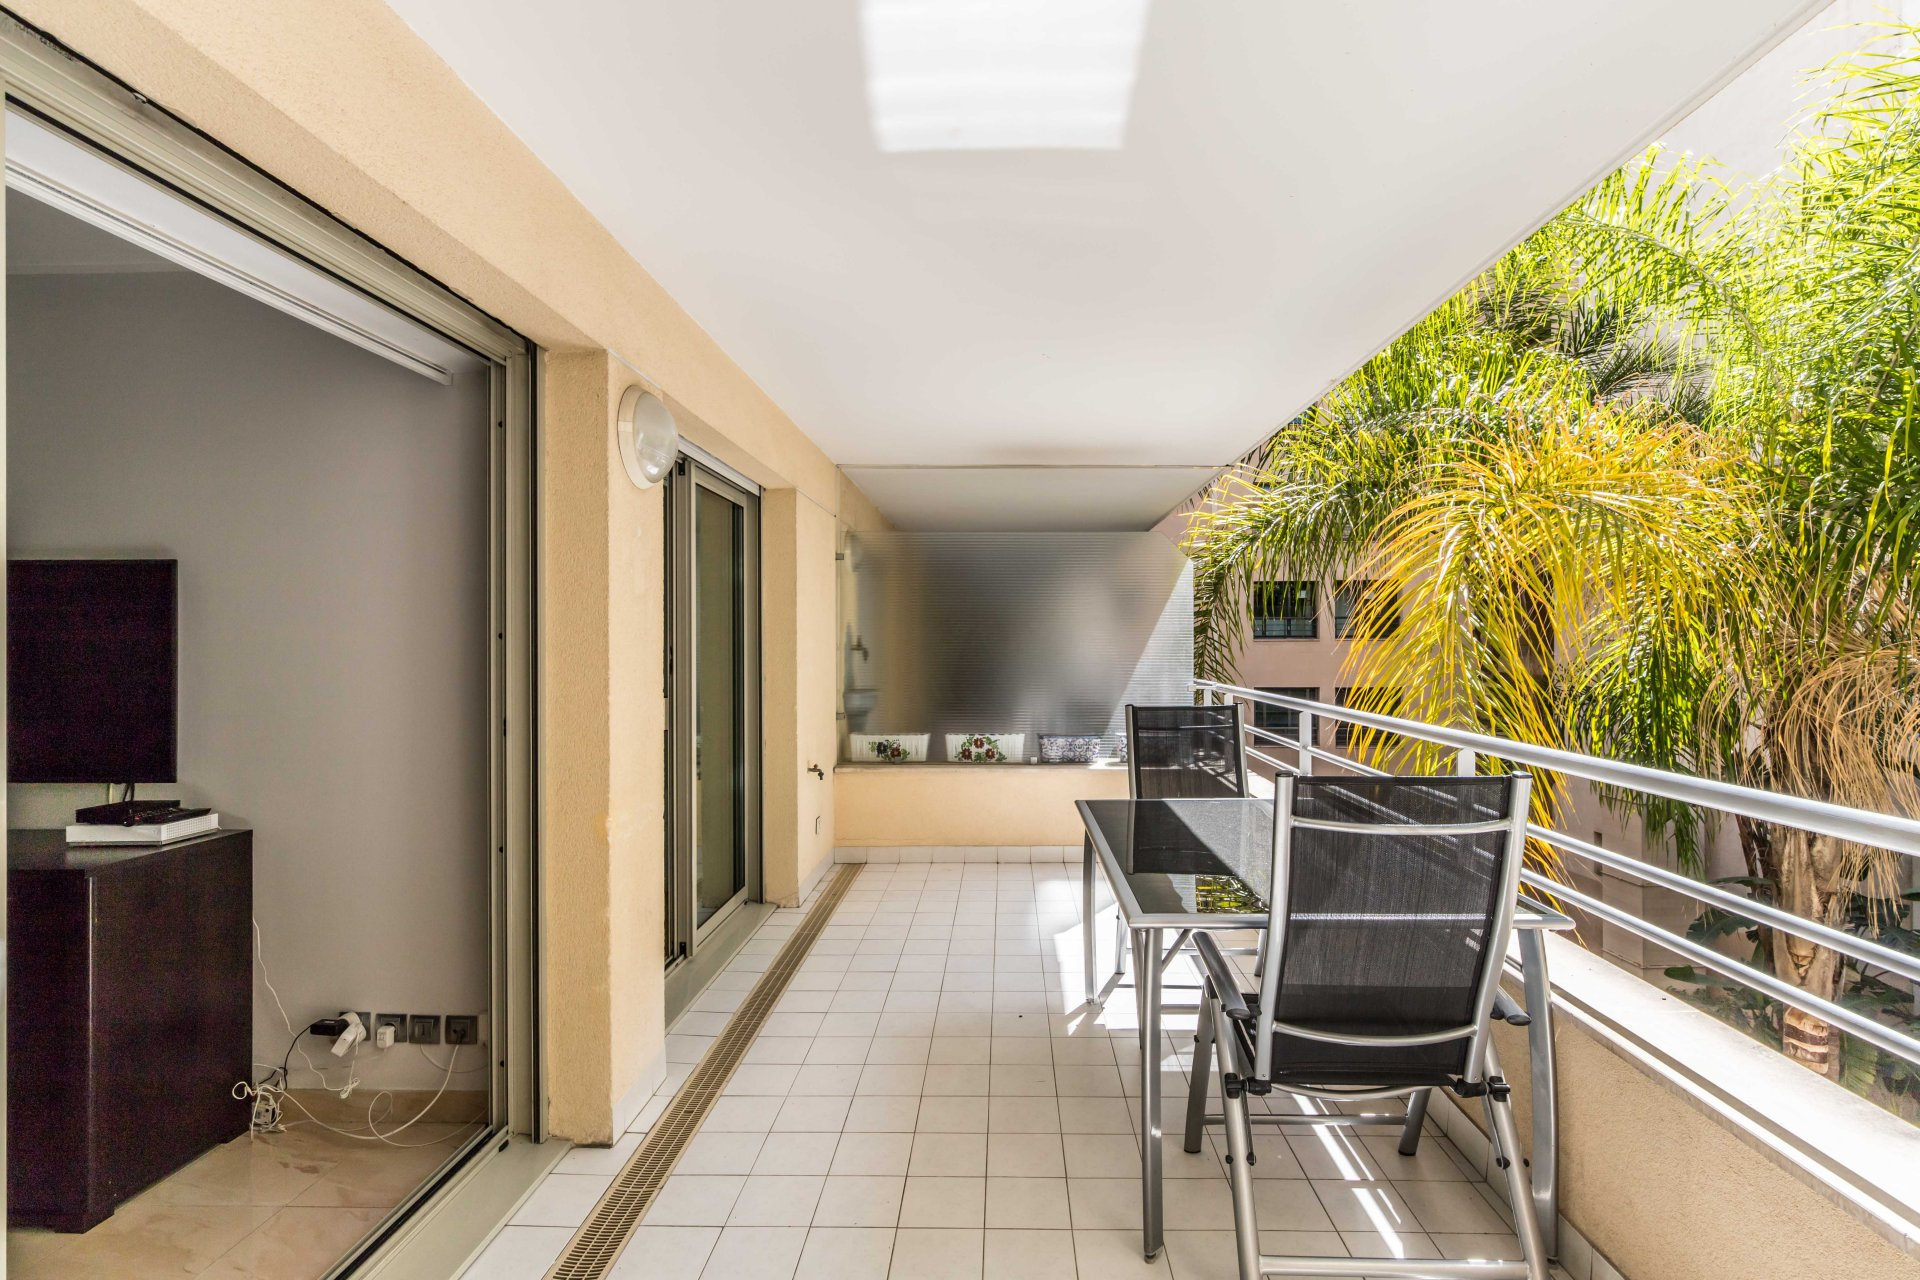 Résidence Du Palais. One bedroom appartment of 45 m2 with large terrace of 15 m2